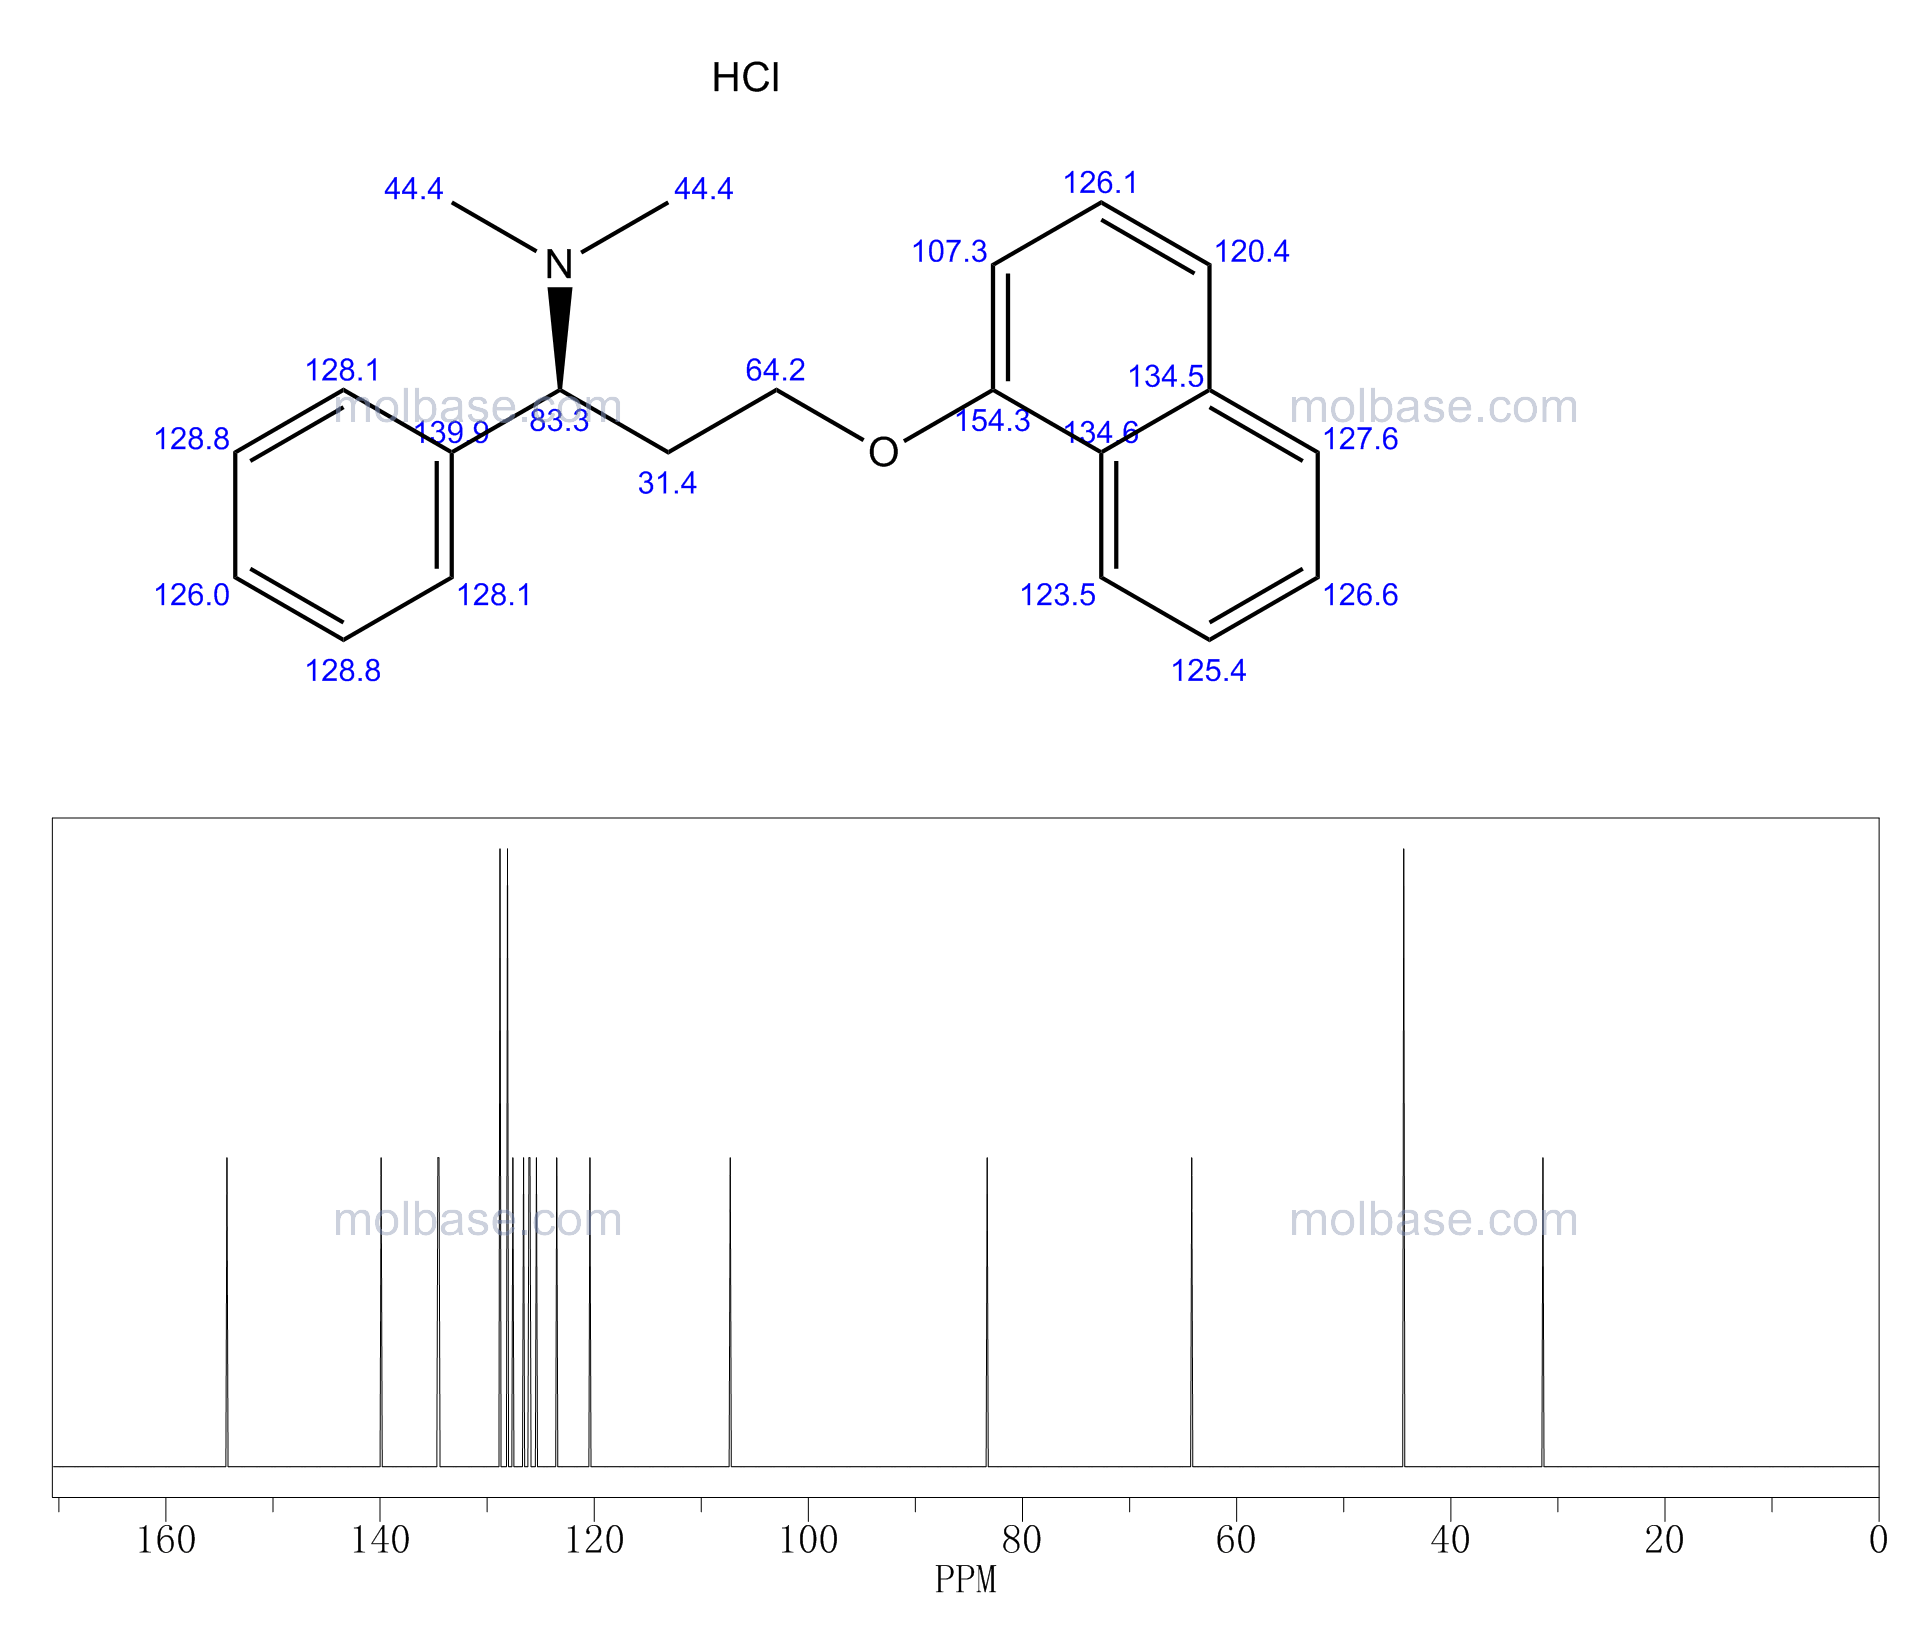 Dapoxetine NMR spectra analysis, Chemical CAS NO. 119356-77-3 NMR spectral analysis, Dapoxetine C-NMR spectrum